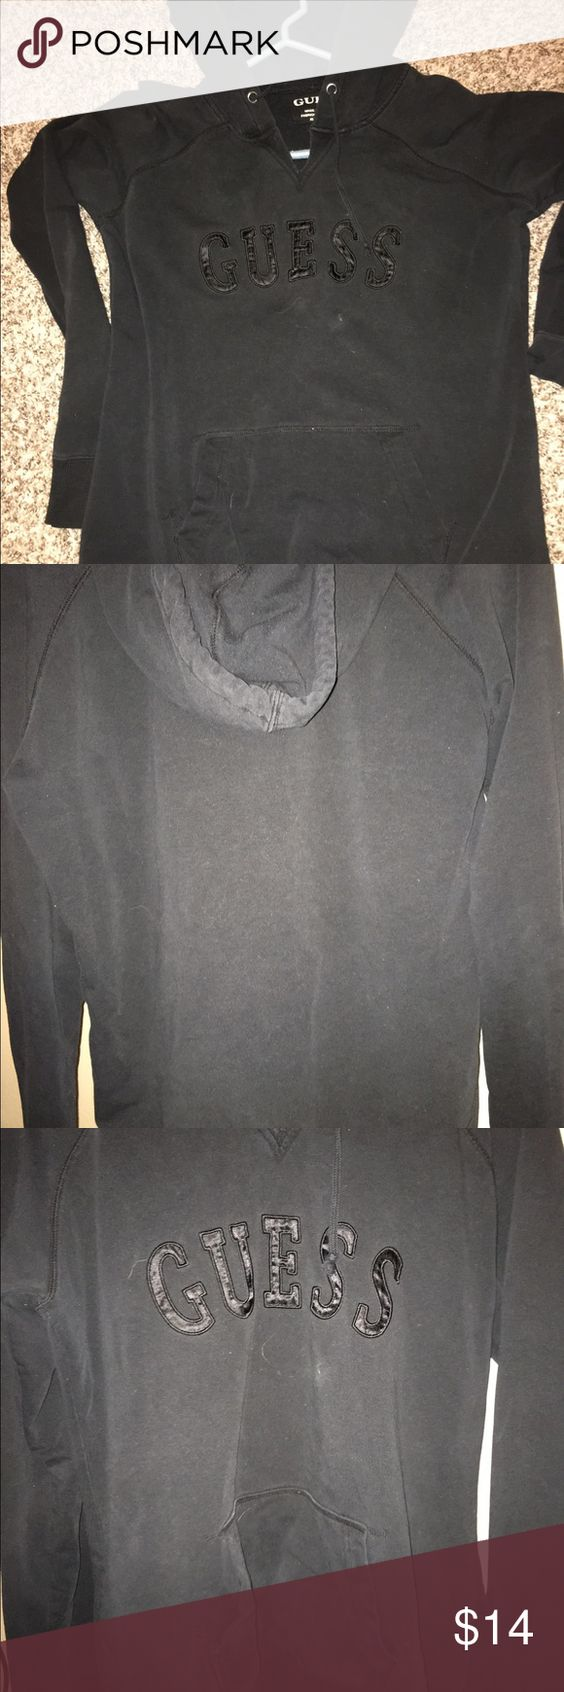 Guess sweatshirt. Nice casual and comfortable ❤️‼️ Comfy black sweatshirt ❤️❤️light use- looks like lighter black in 2 pics but the one in carpet it the true black it is Guess Tops Sweatshirts & Hoodies